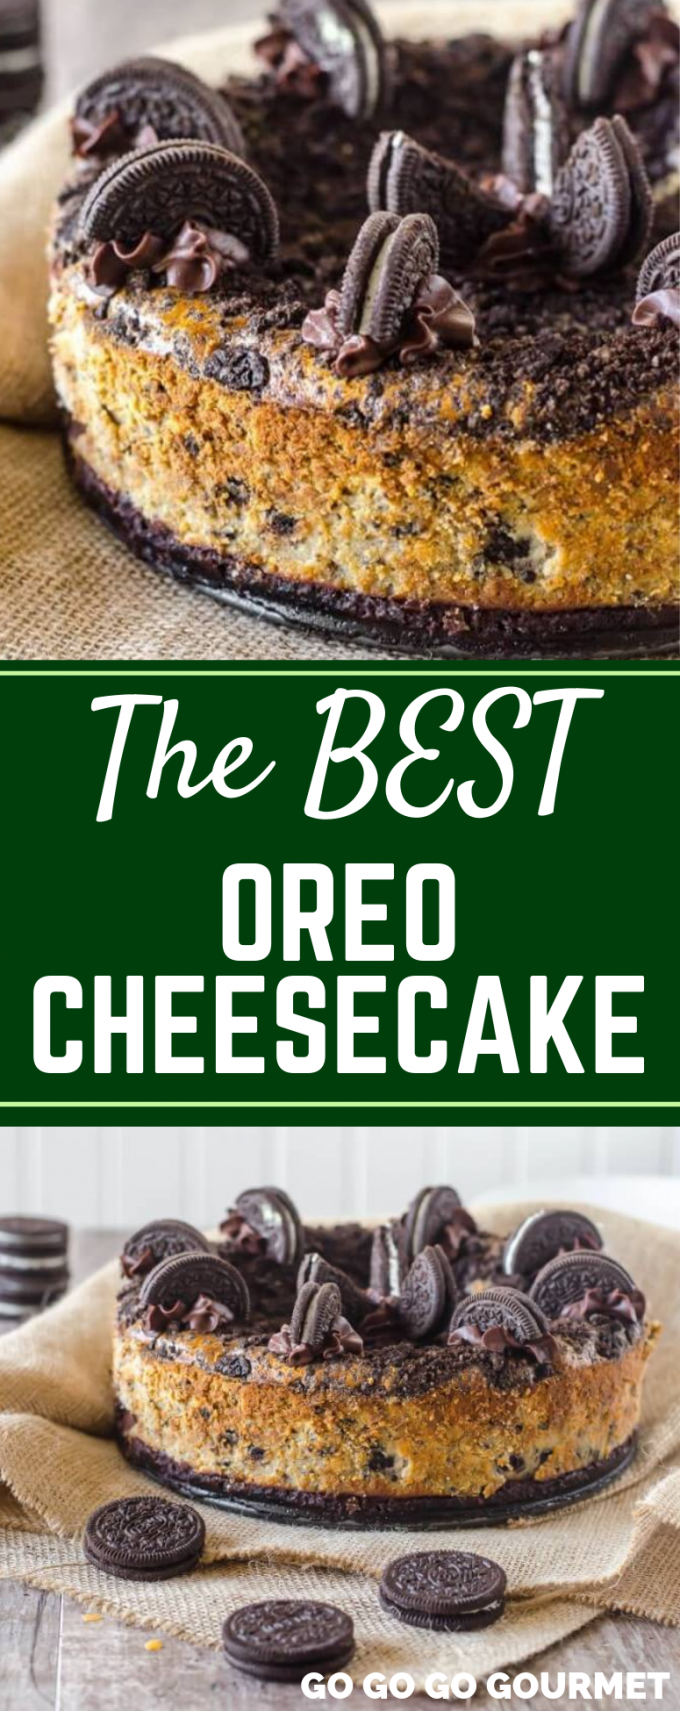 While this recipe isn't no bake, this Oreo Cheesecake is so easy! With over 40 Oreo cookies, you'll have a slice of this cheesecake gone in just a few bites! It has a layer of chocolate ganache over the crust, and it really it the best! #gogogogourmet #oreocheesecake #bestoreocheesecakerecipe #easycheesecakerecipes via @gogogogourmet